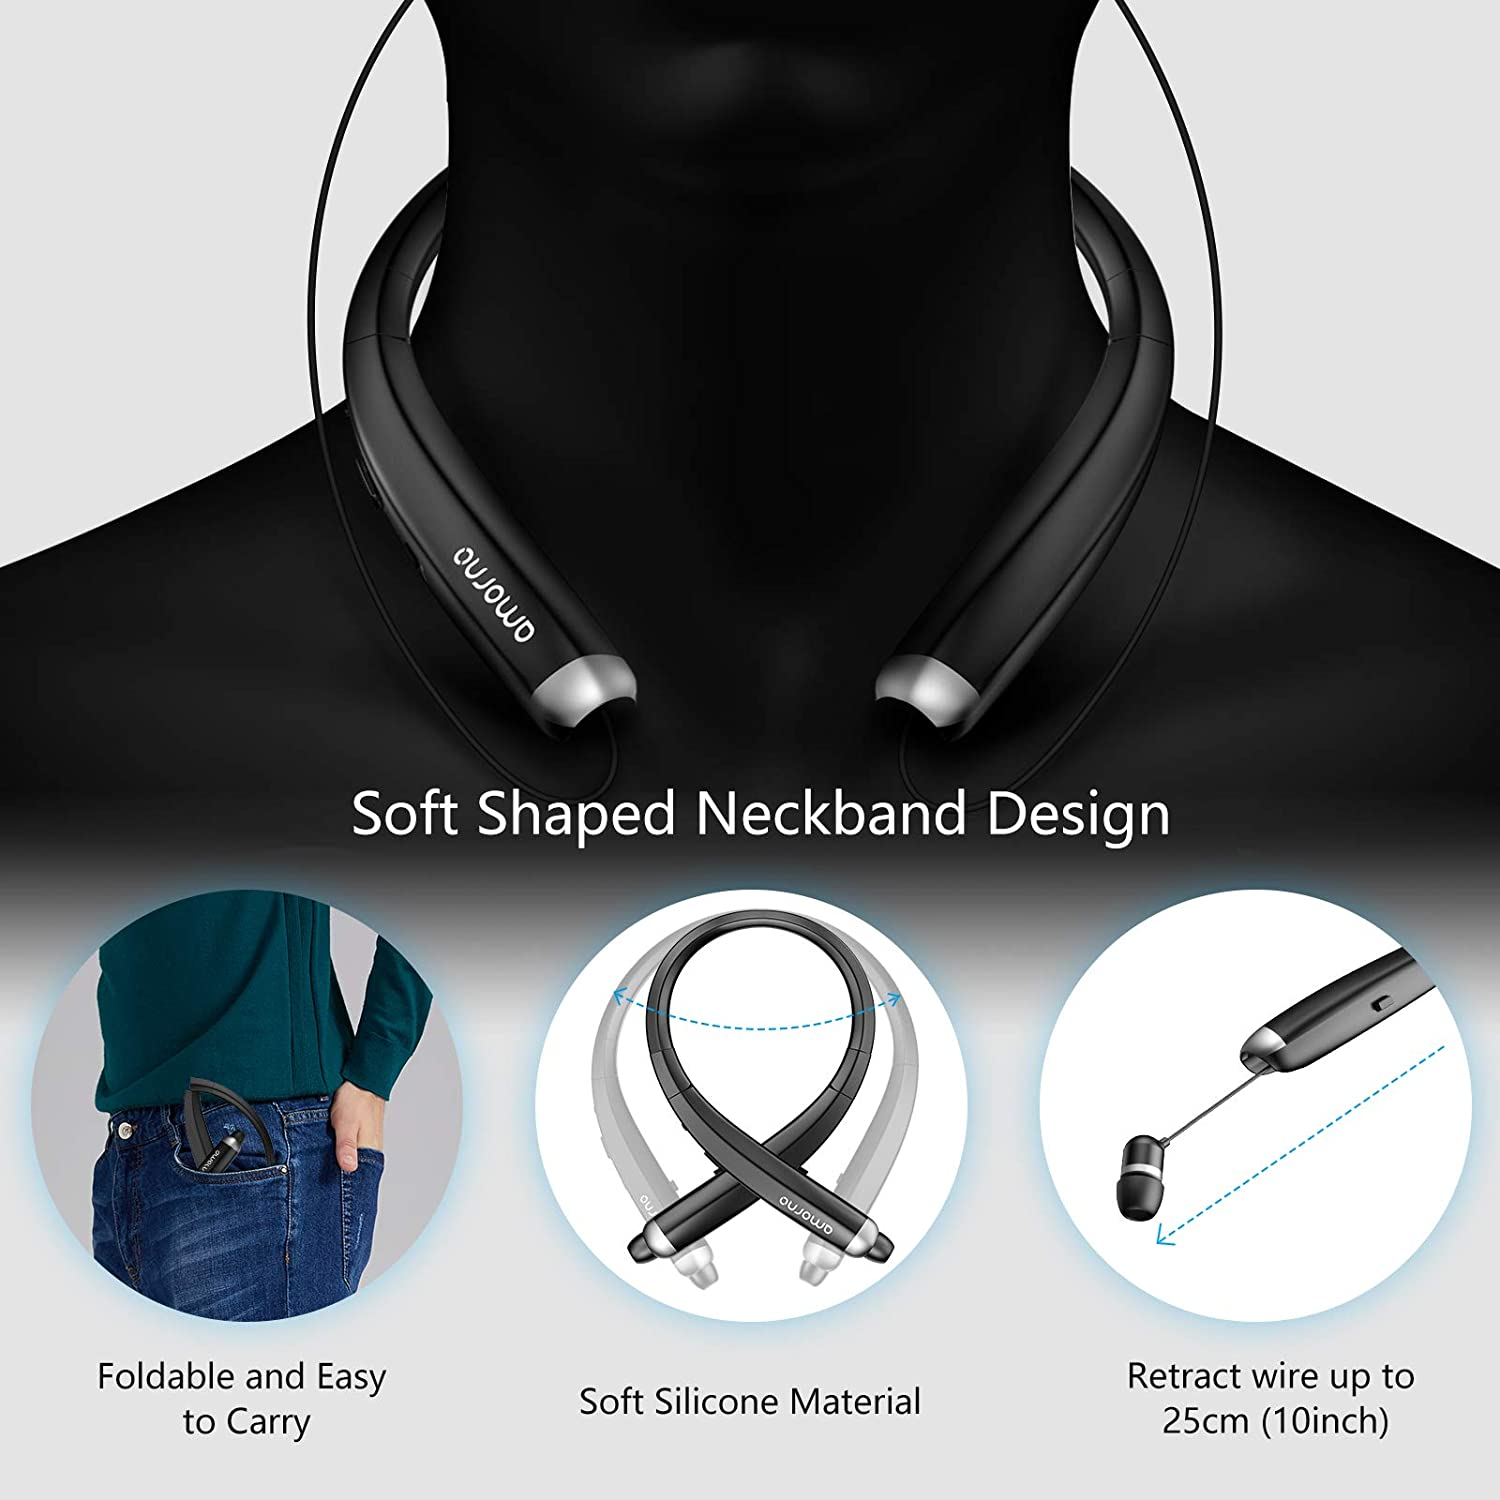 Foldable Bluetooth Headphones, AMORNO Wireless Neckband Sports Headset with Retractable Earbuds, Sweatproof Noise Cancelling Stereo Earphones with Mic Black